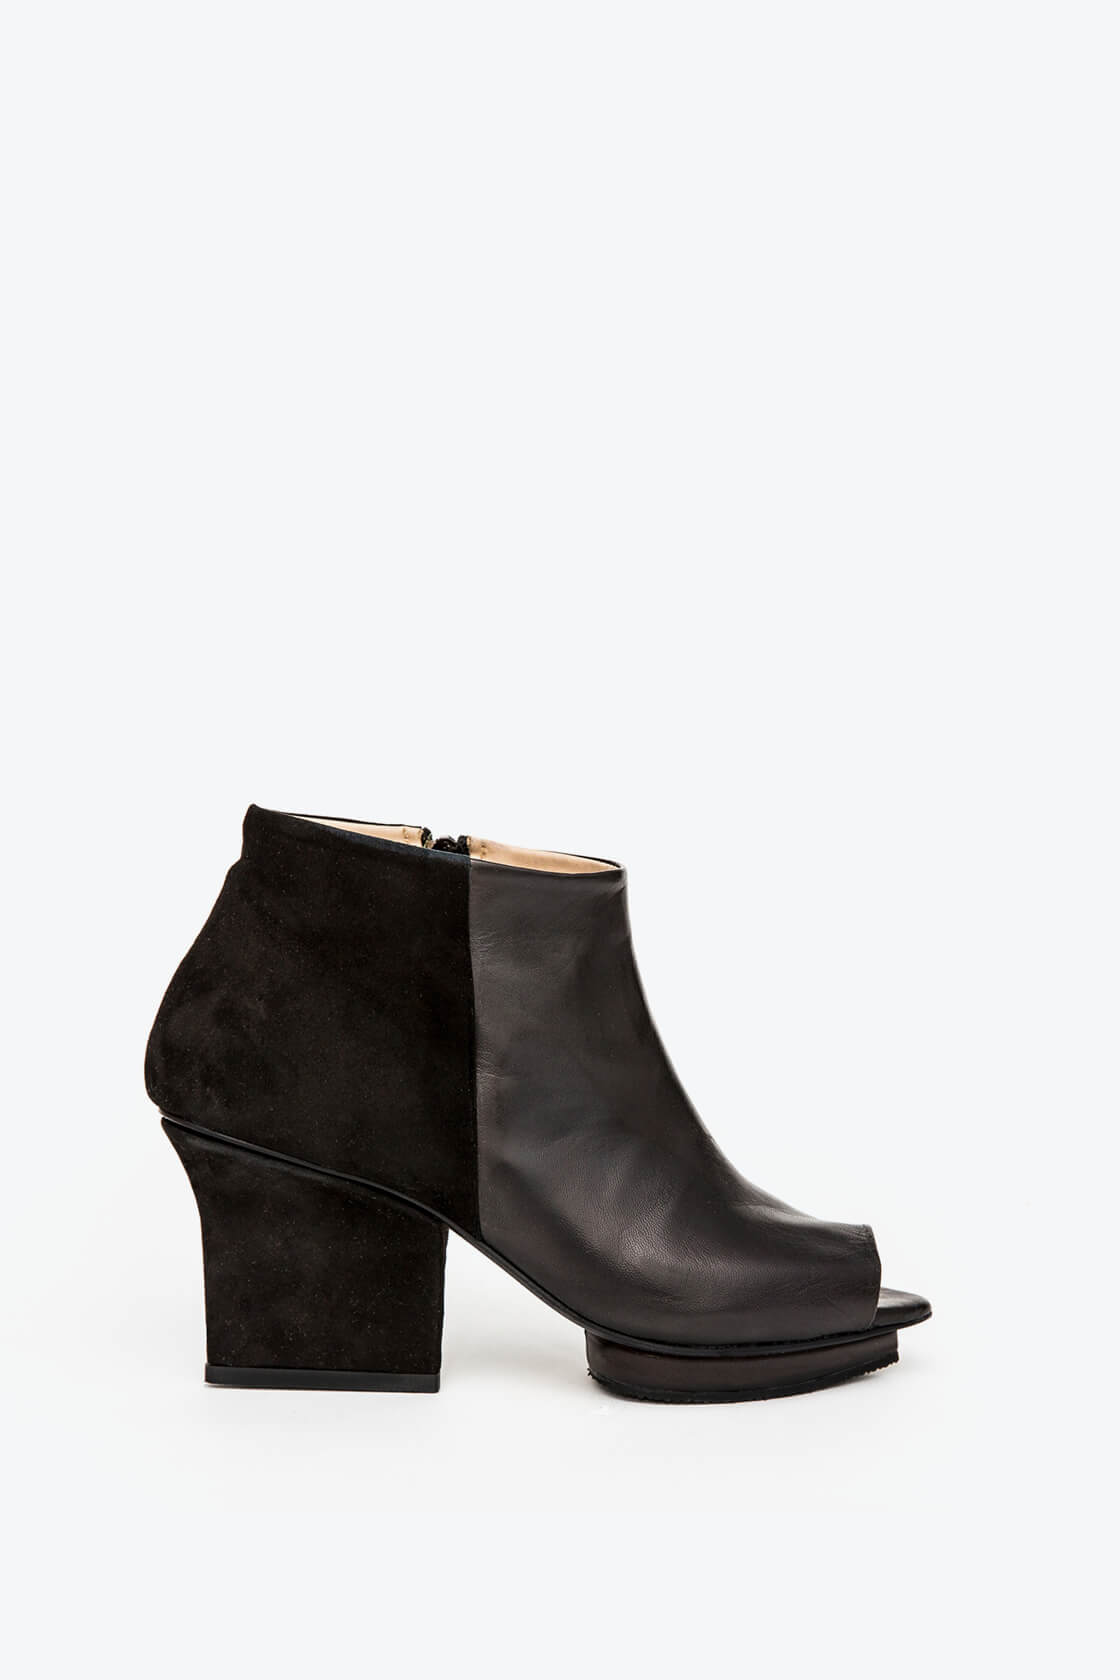 EJK0000002 Christal ankle boots open toe black 1